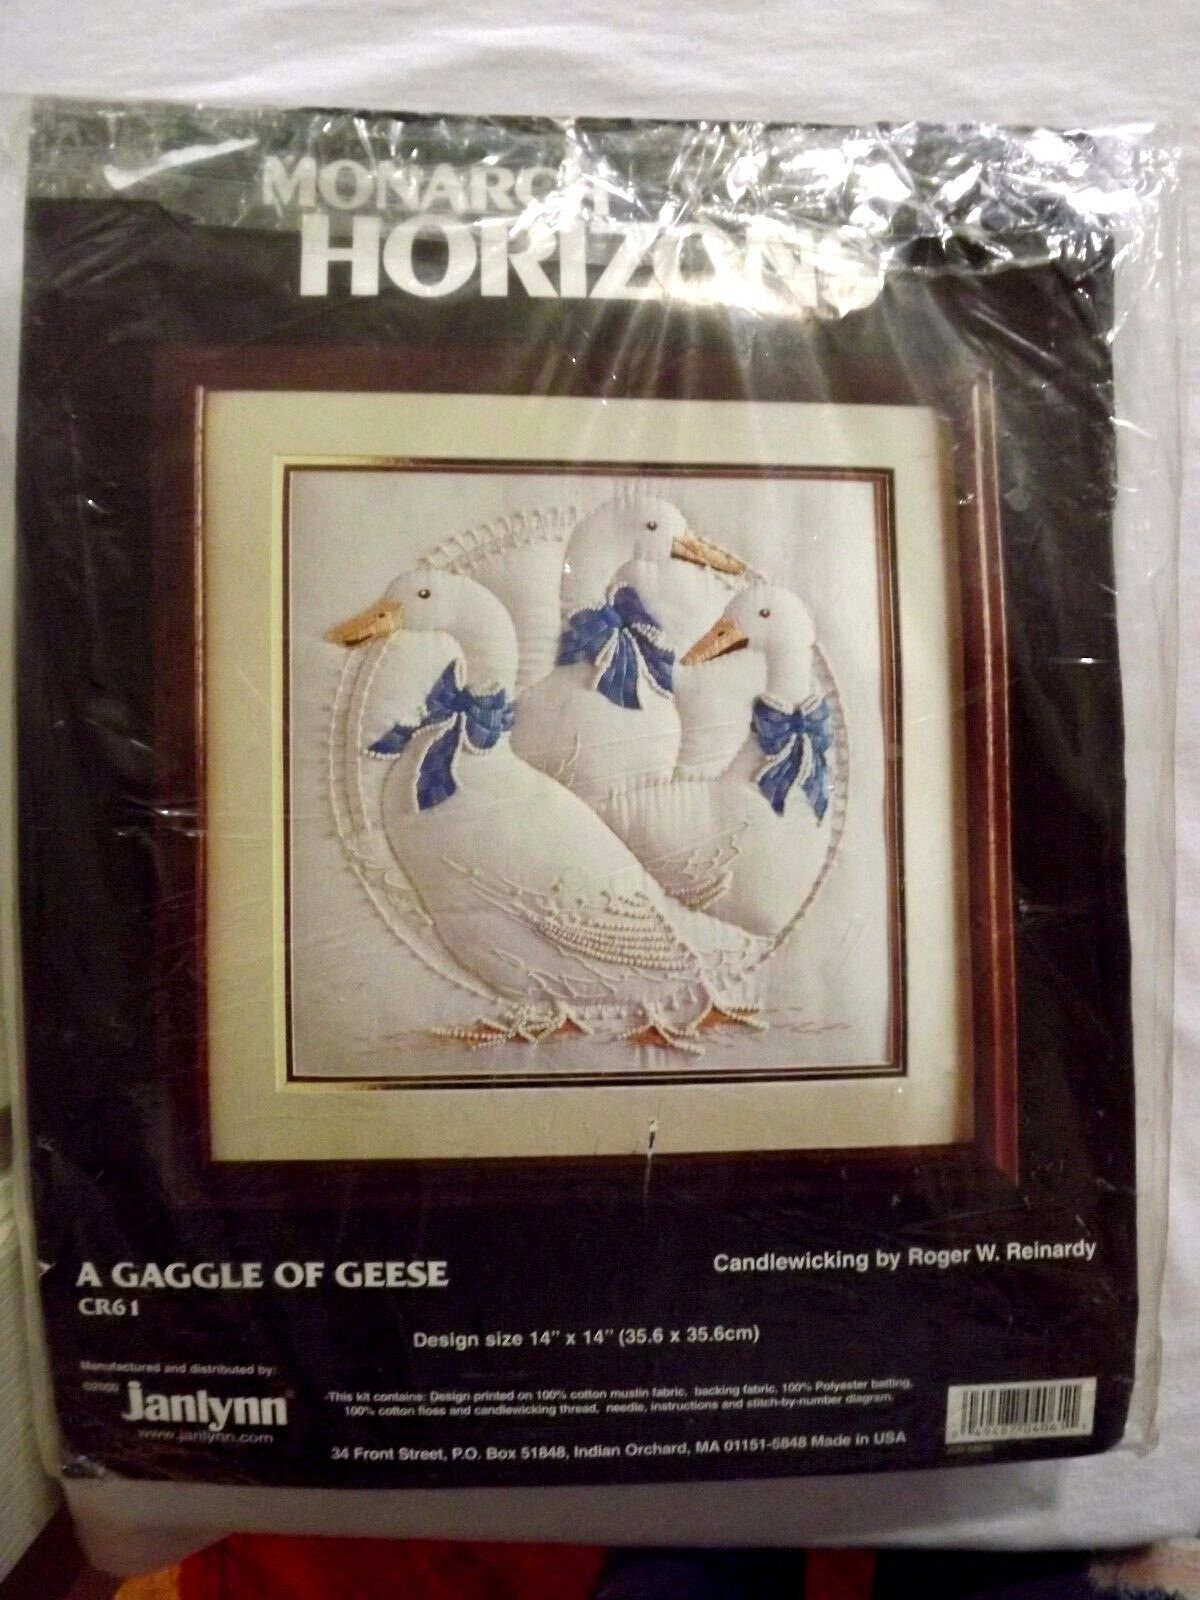 Monarch Horizons-A Gaggle of Geese Candlewicking Kit #CR61 NEW-Opened package - $13.59